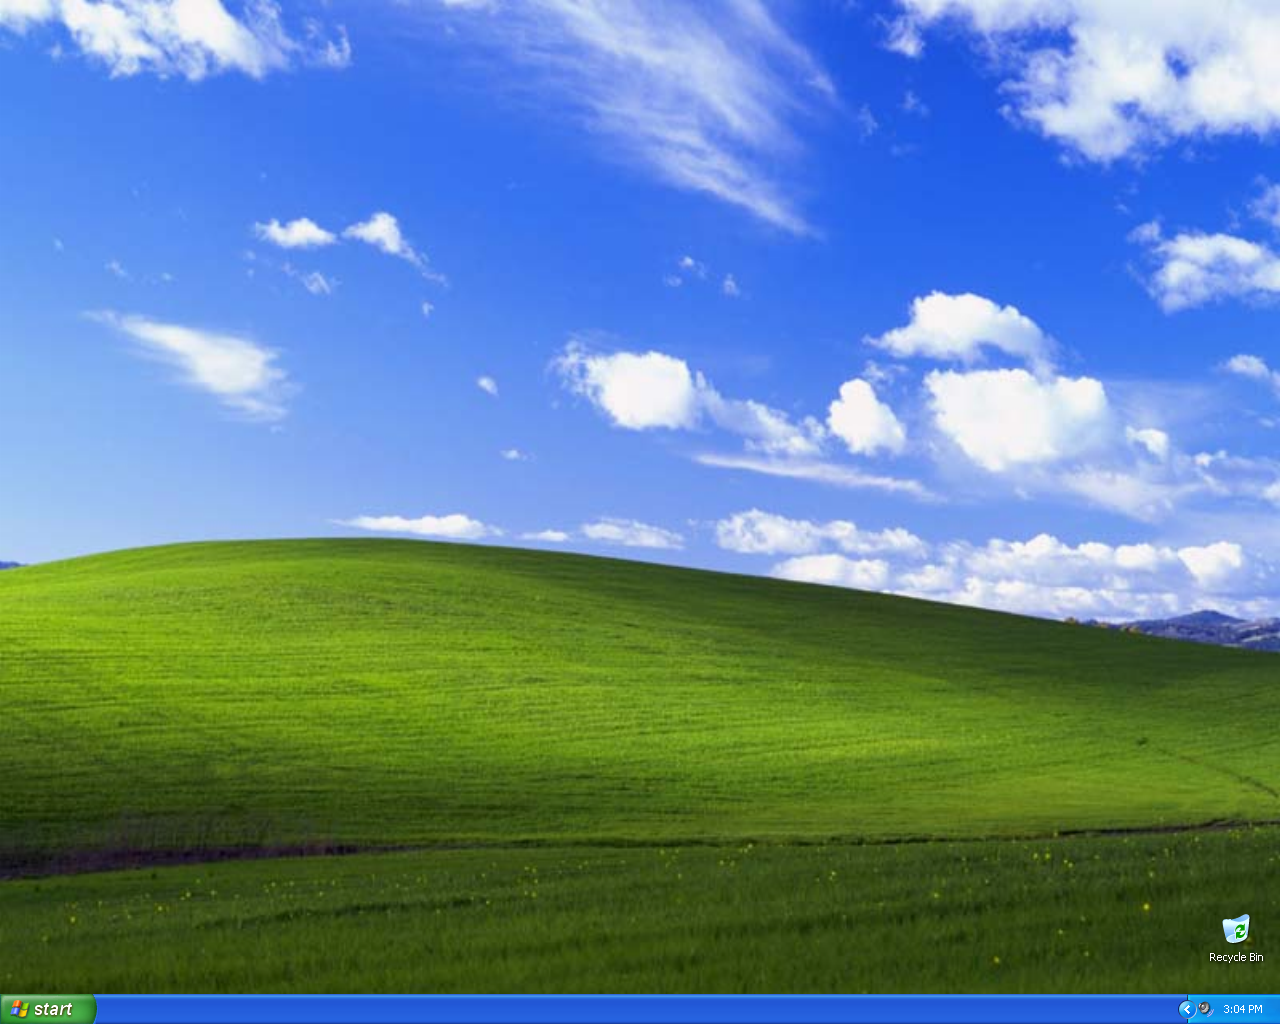 Heres How You Can Run The Nostalgic Windows Xp On An Iphone